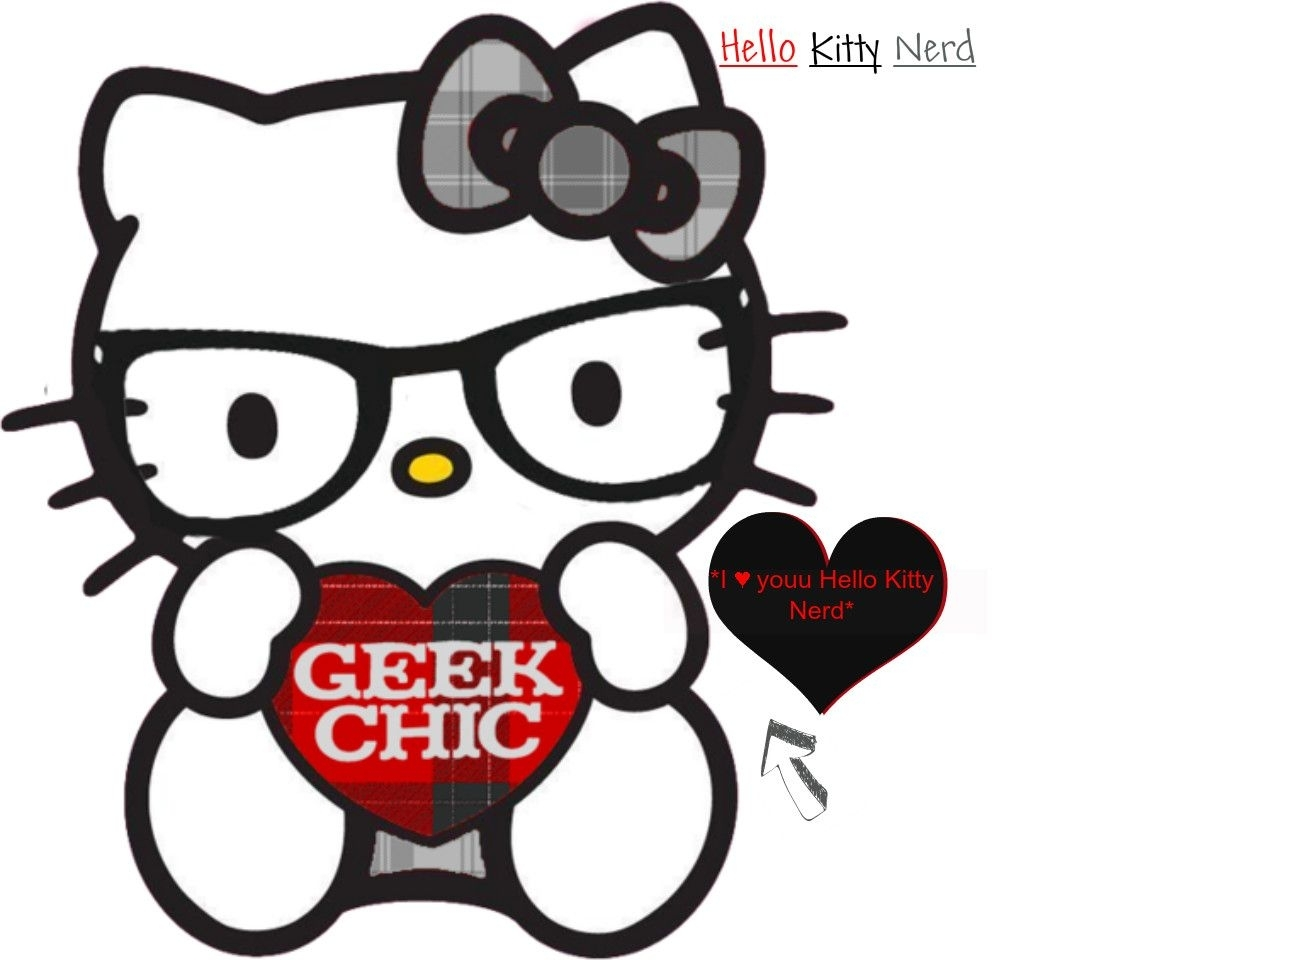 10 New Hello Kitty Nerd Wallpaper FULL HD 1920×1080 For PC Desktop